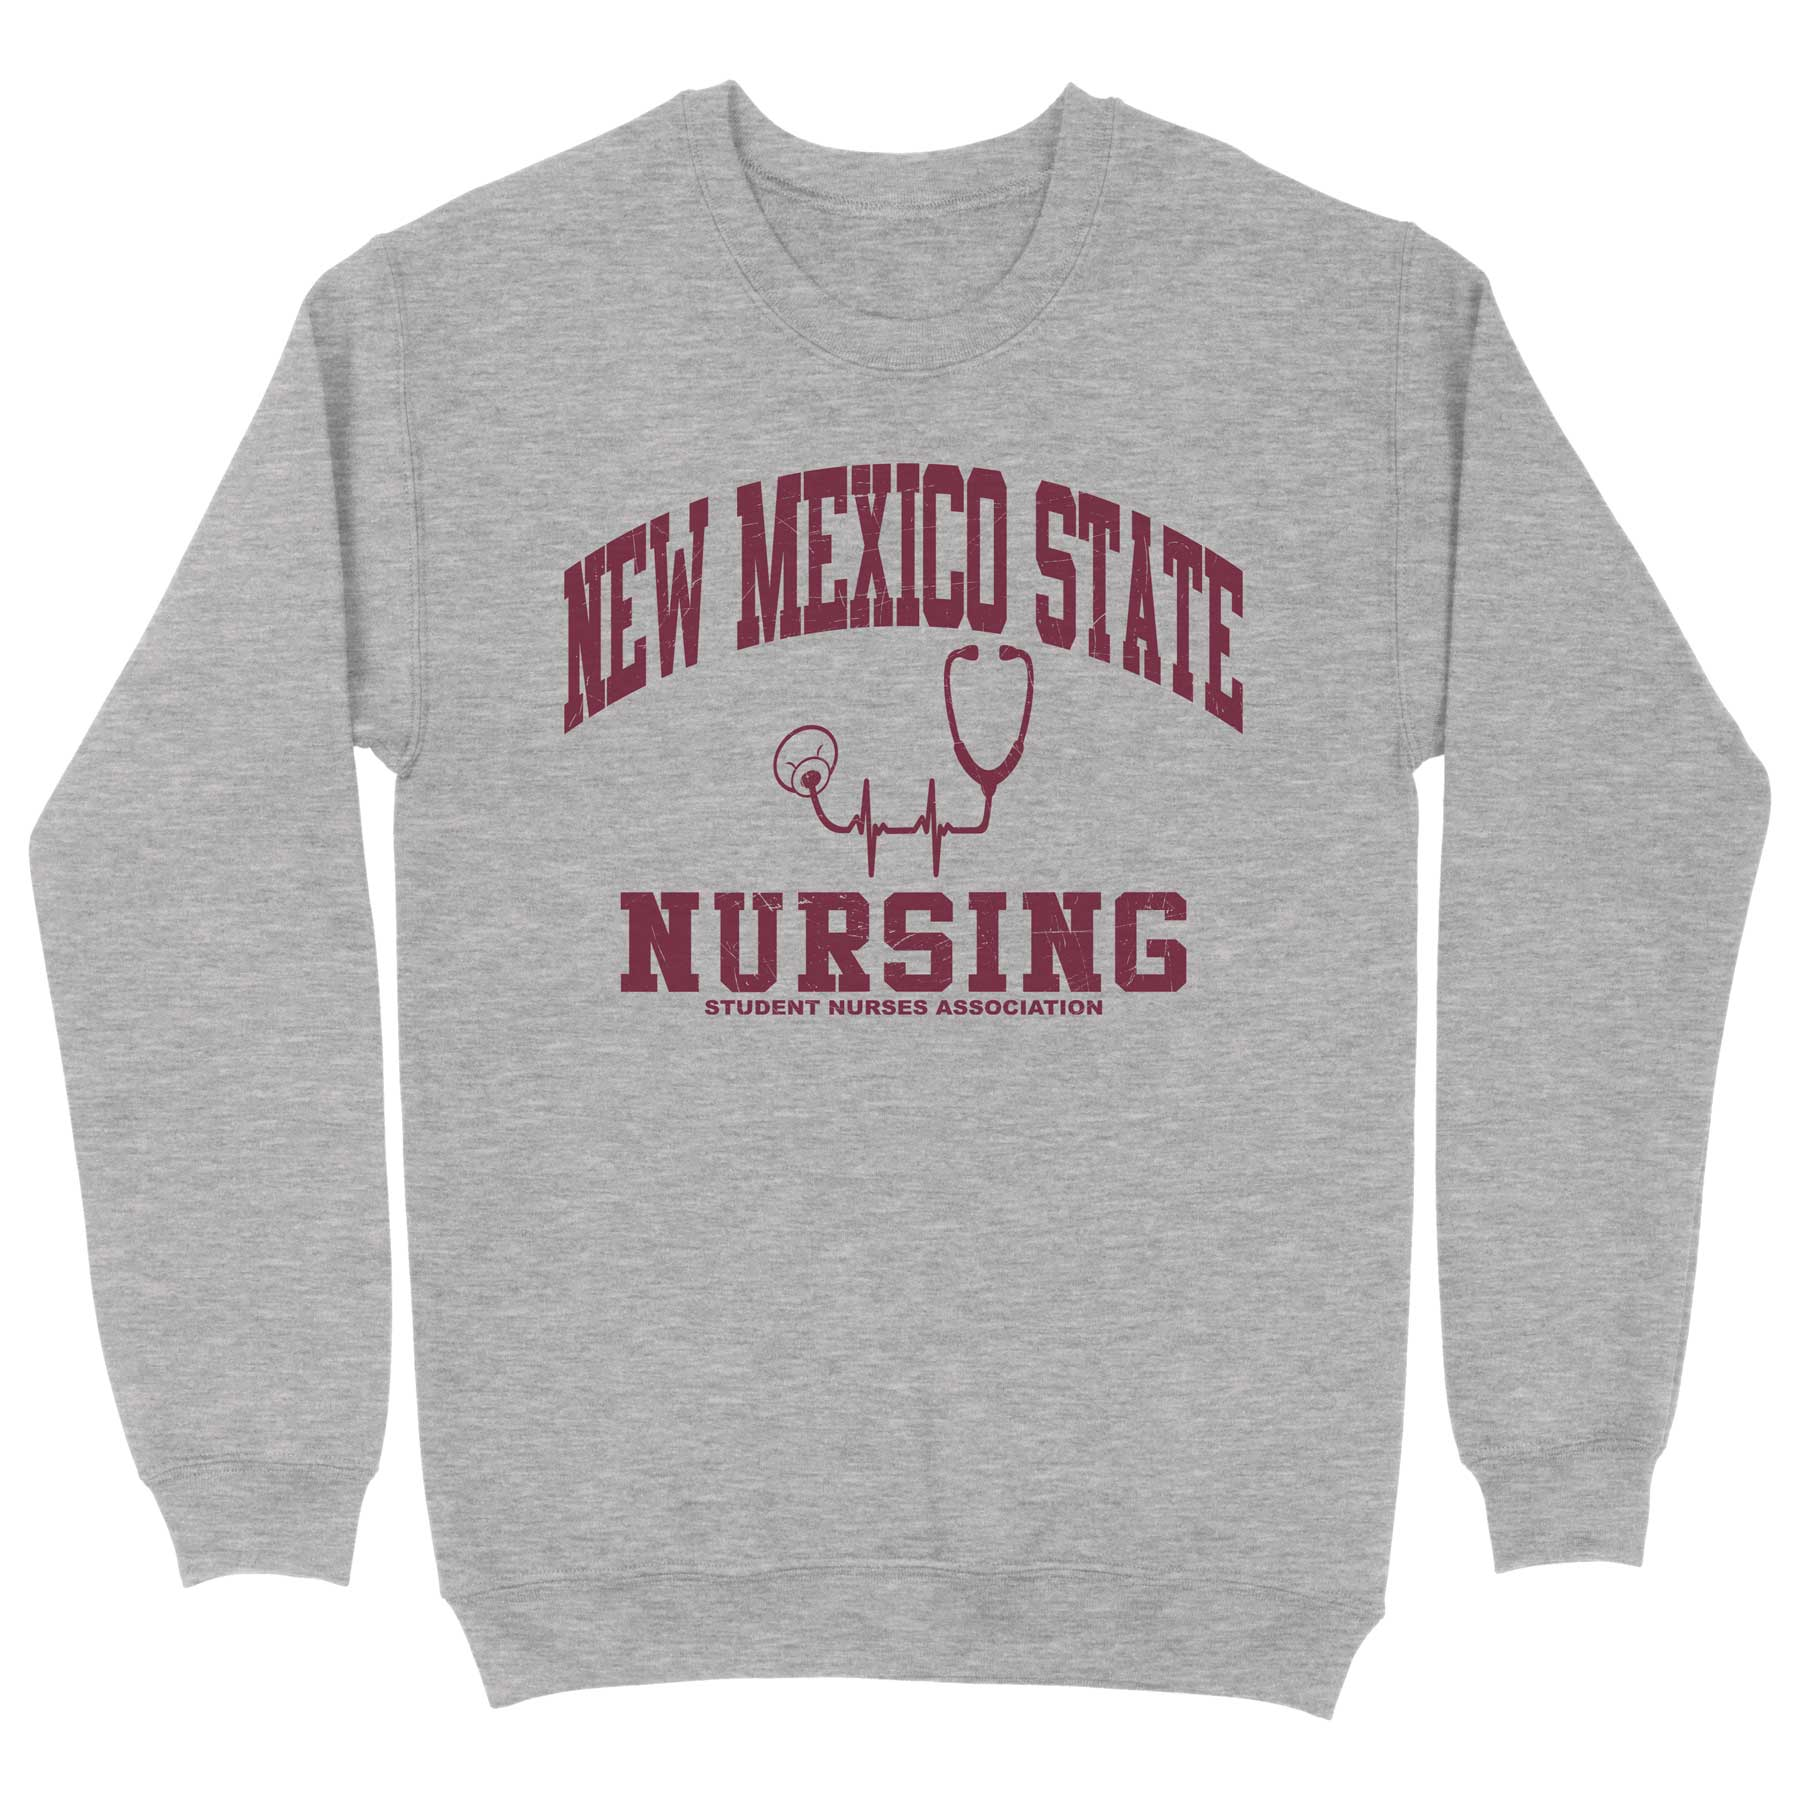 NMSU Student Nurses Association Crewneck Sweatshirt